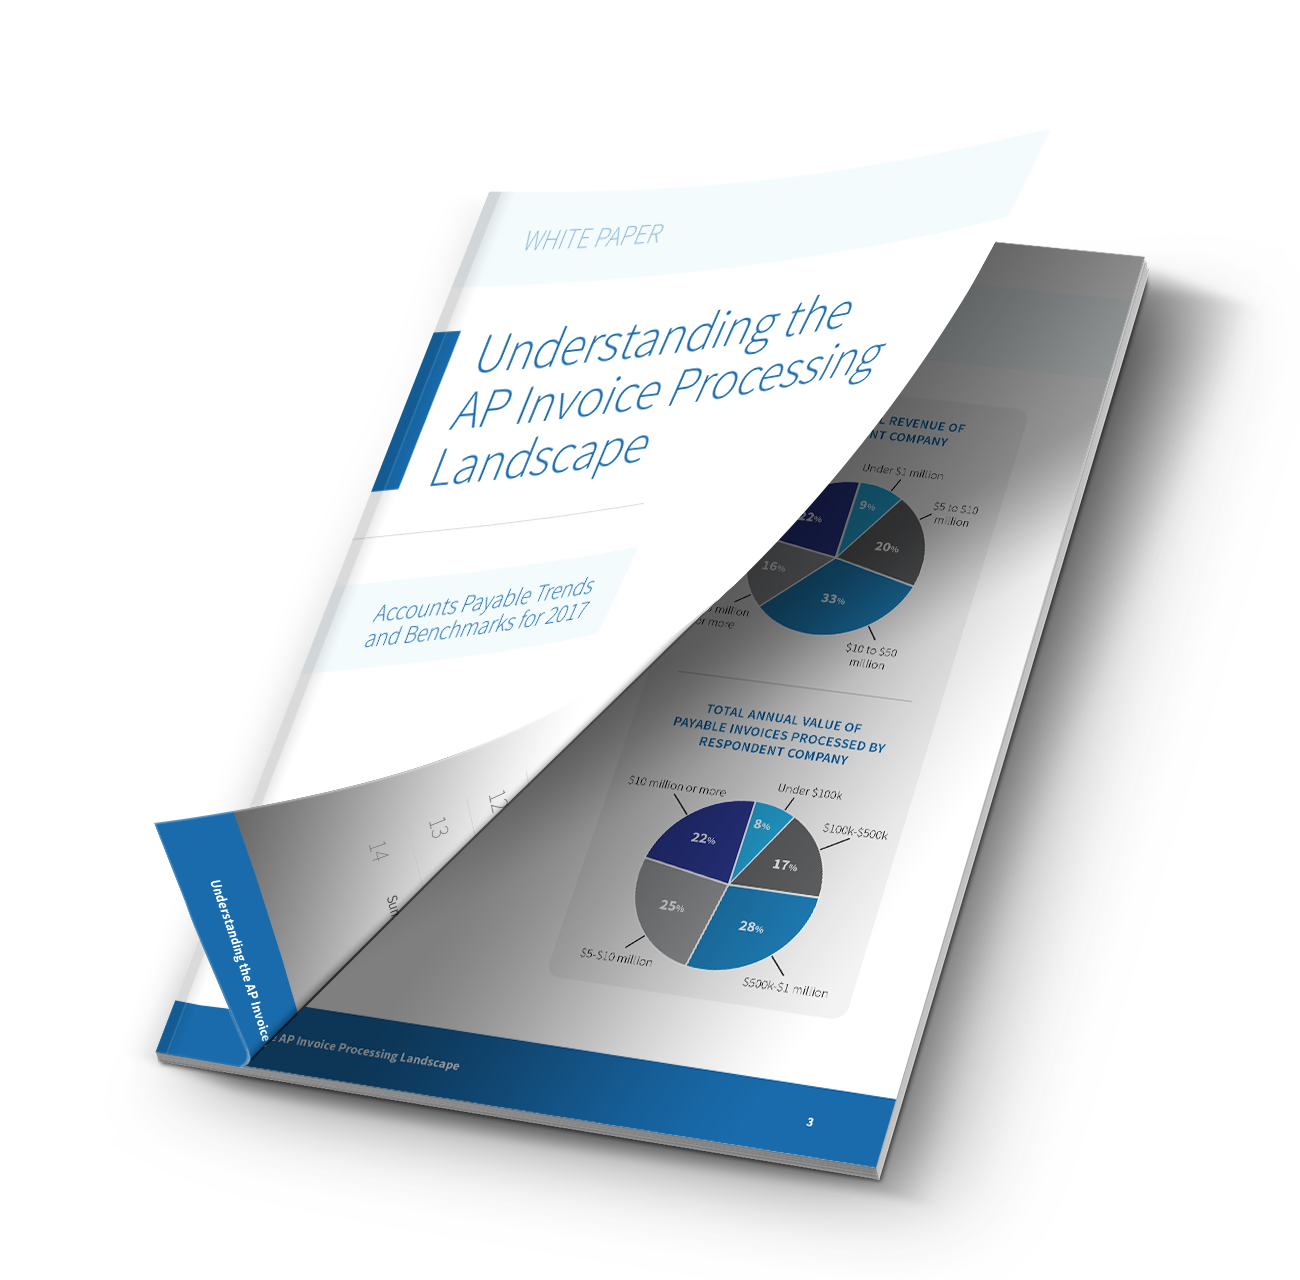 Understanding the AP Invoice Processing Landscape: Trends and Benchmarks for 2017